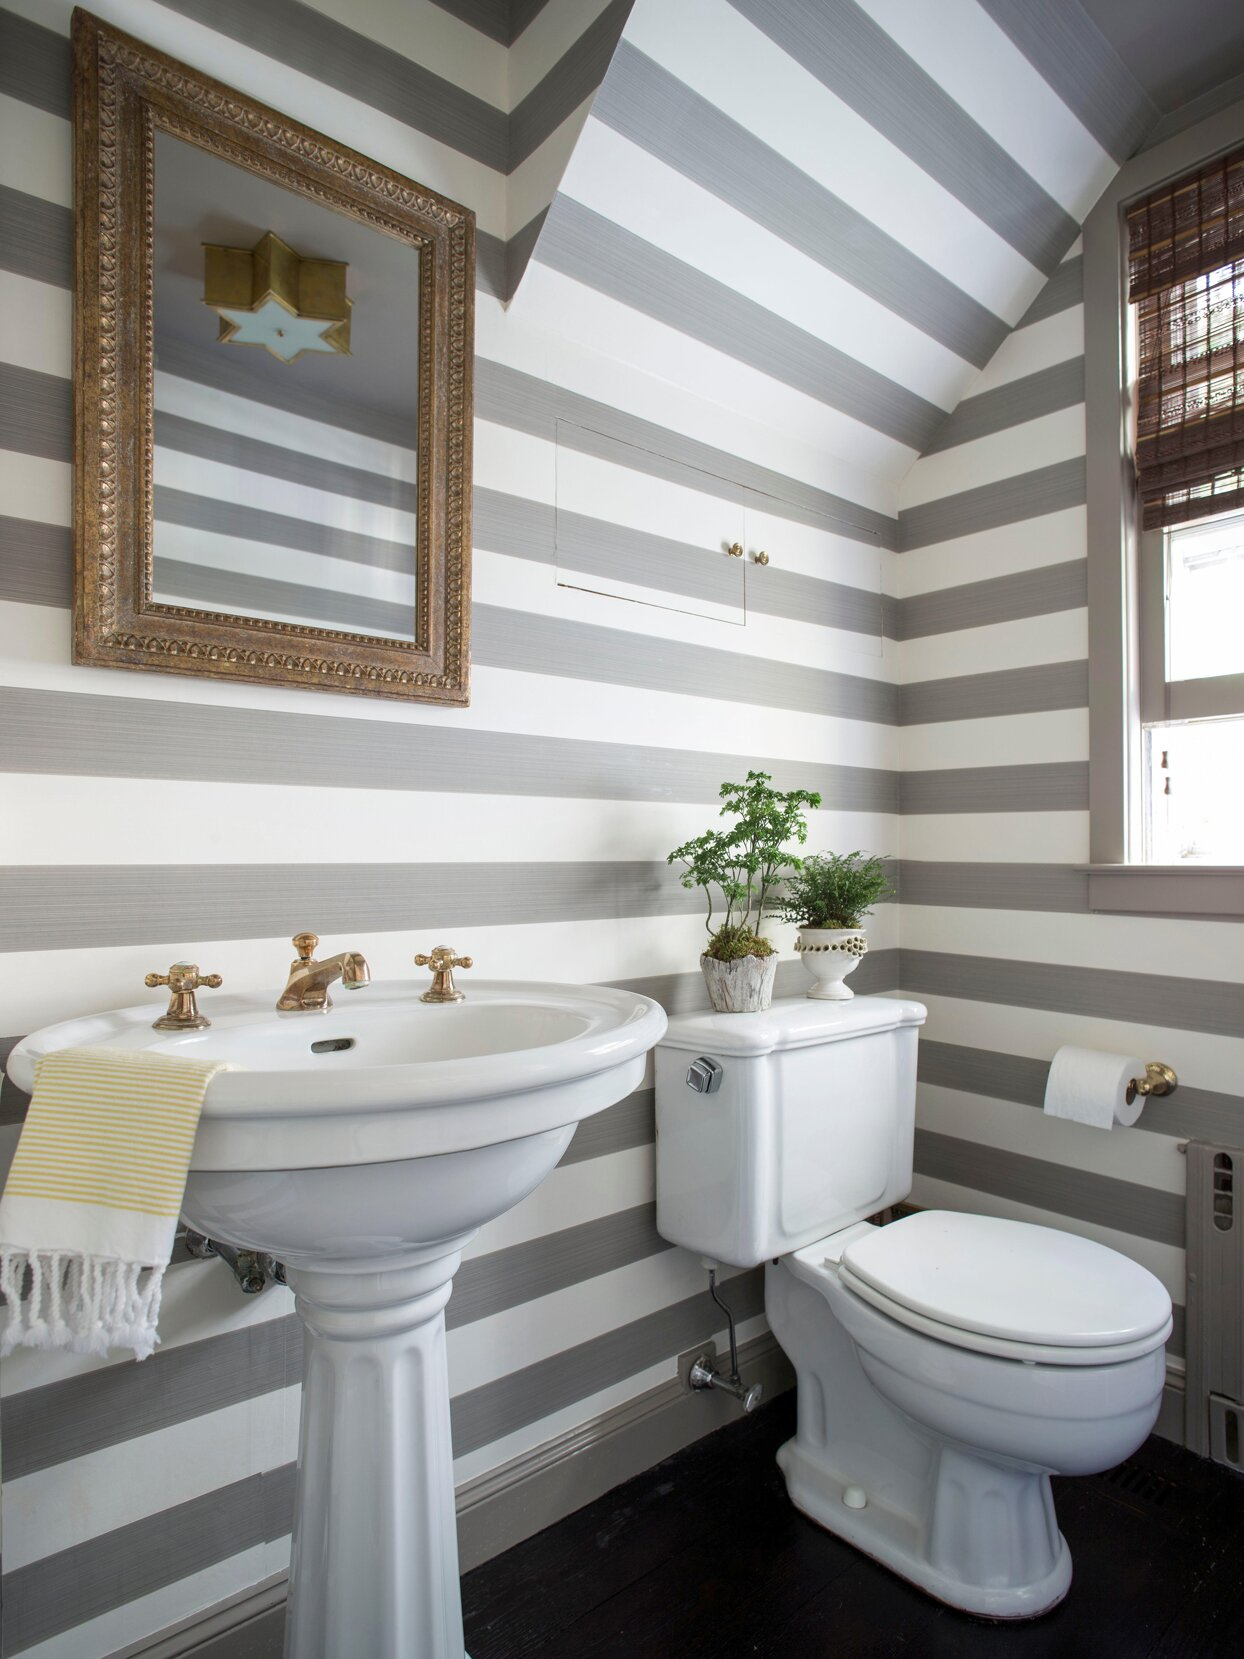 grey and white striped bathroom